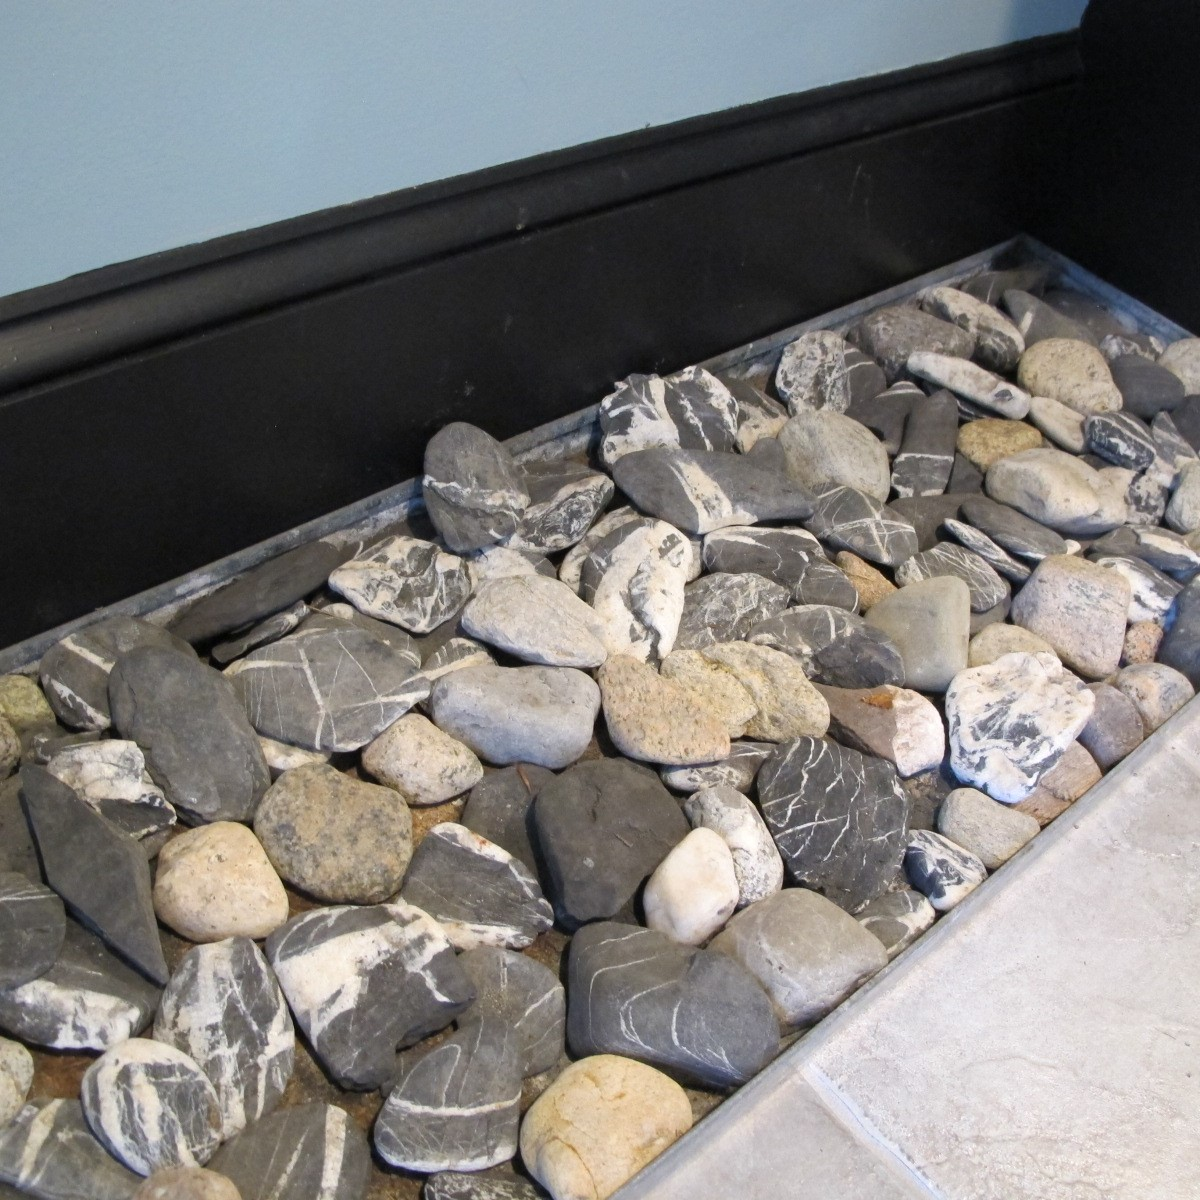 We like to add custom boot trays to our mudrooms.  This one is made from galvanized sheet metal and filled with rocks from locations important to the owners.  The rocks can handle all the mud and salt cast off from the boots while serving as tokens from past adventures.